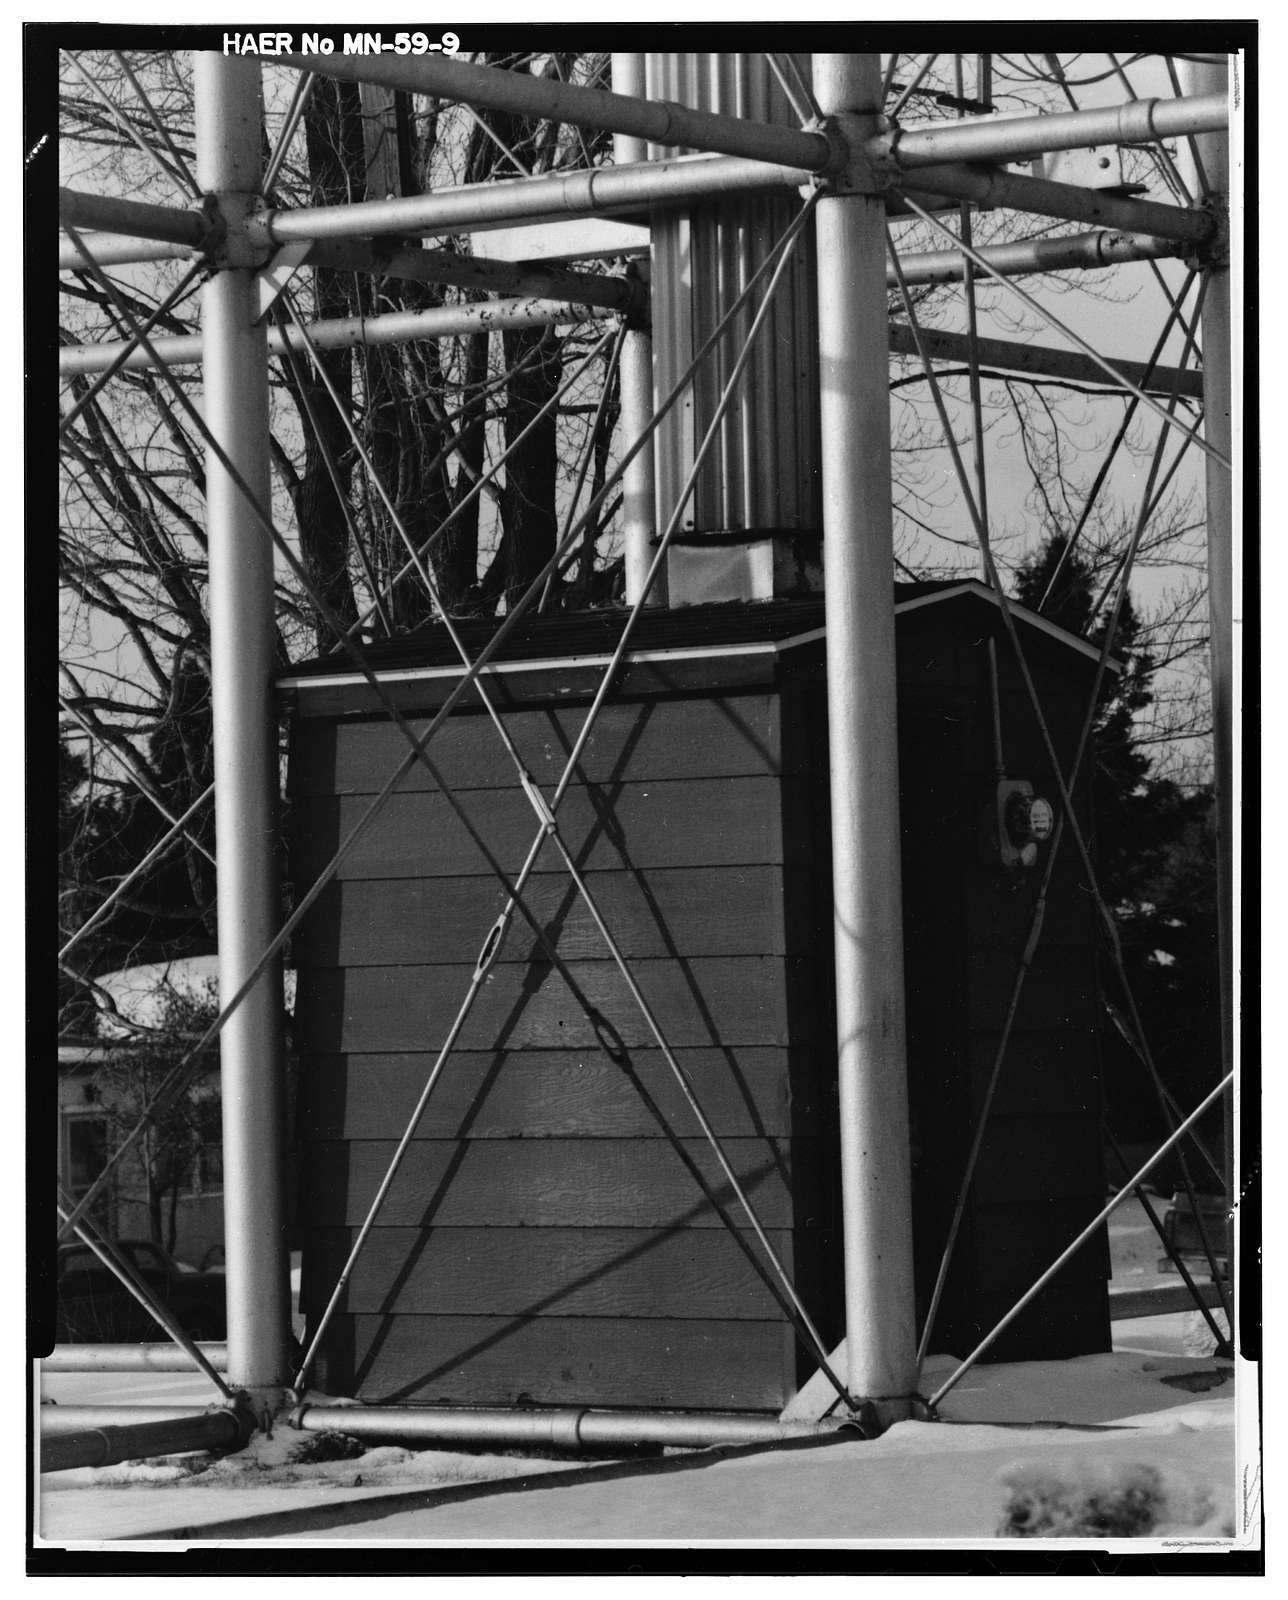 Bovey Water Tower, Eighth Avenue & T.H. 169, Bovey, Itasca County, MN